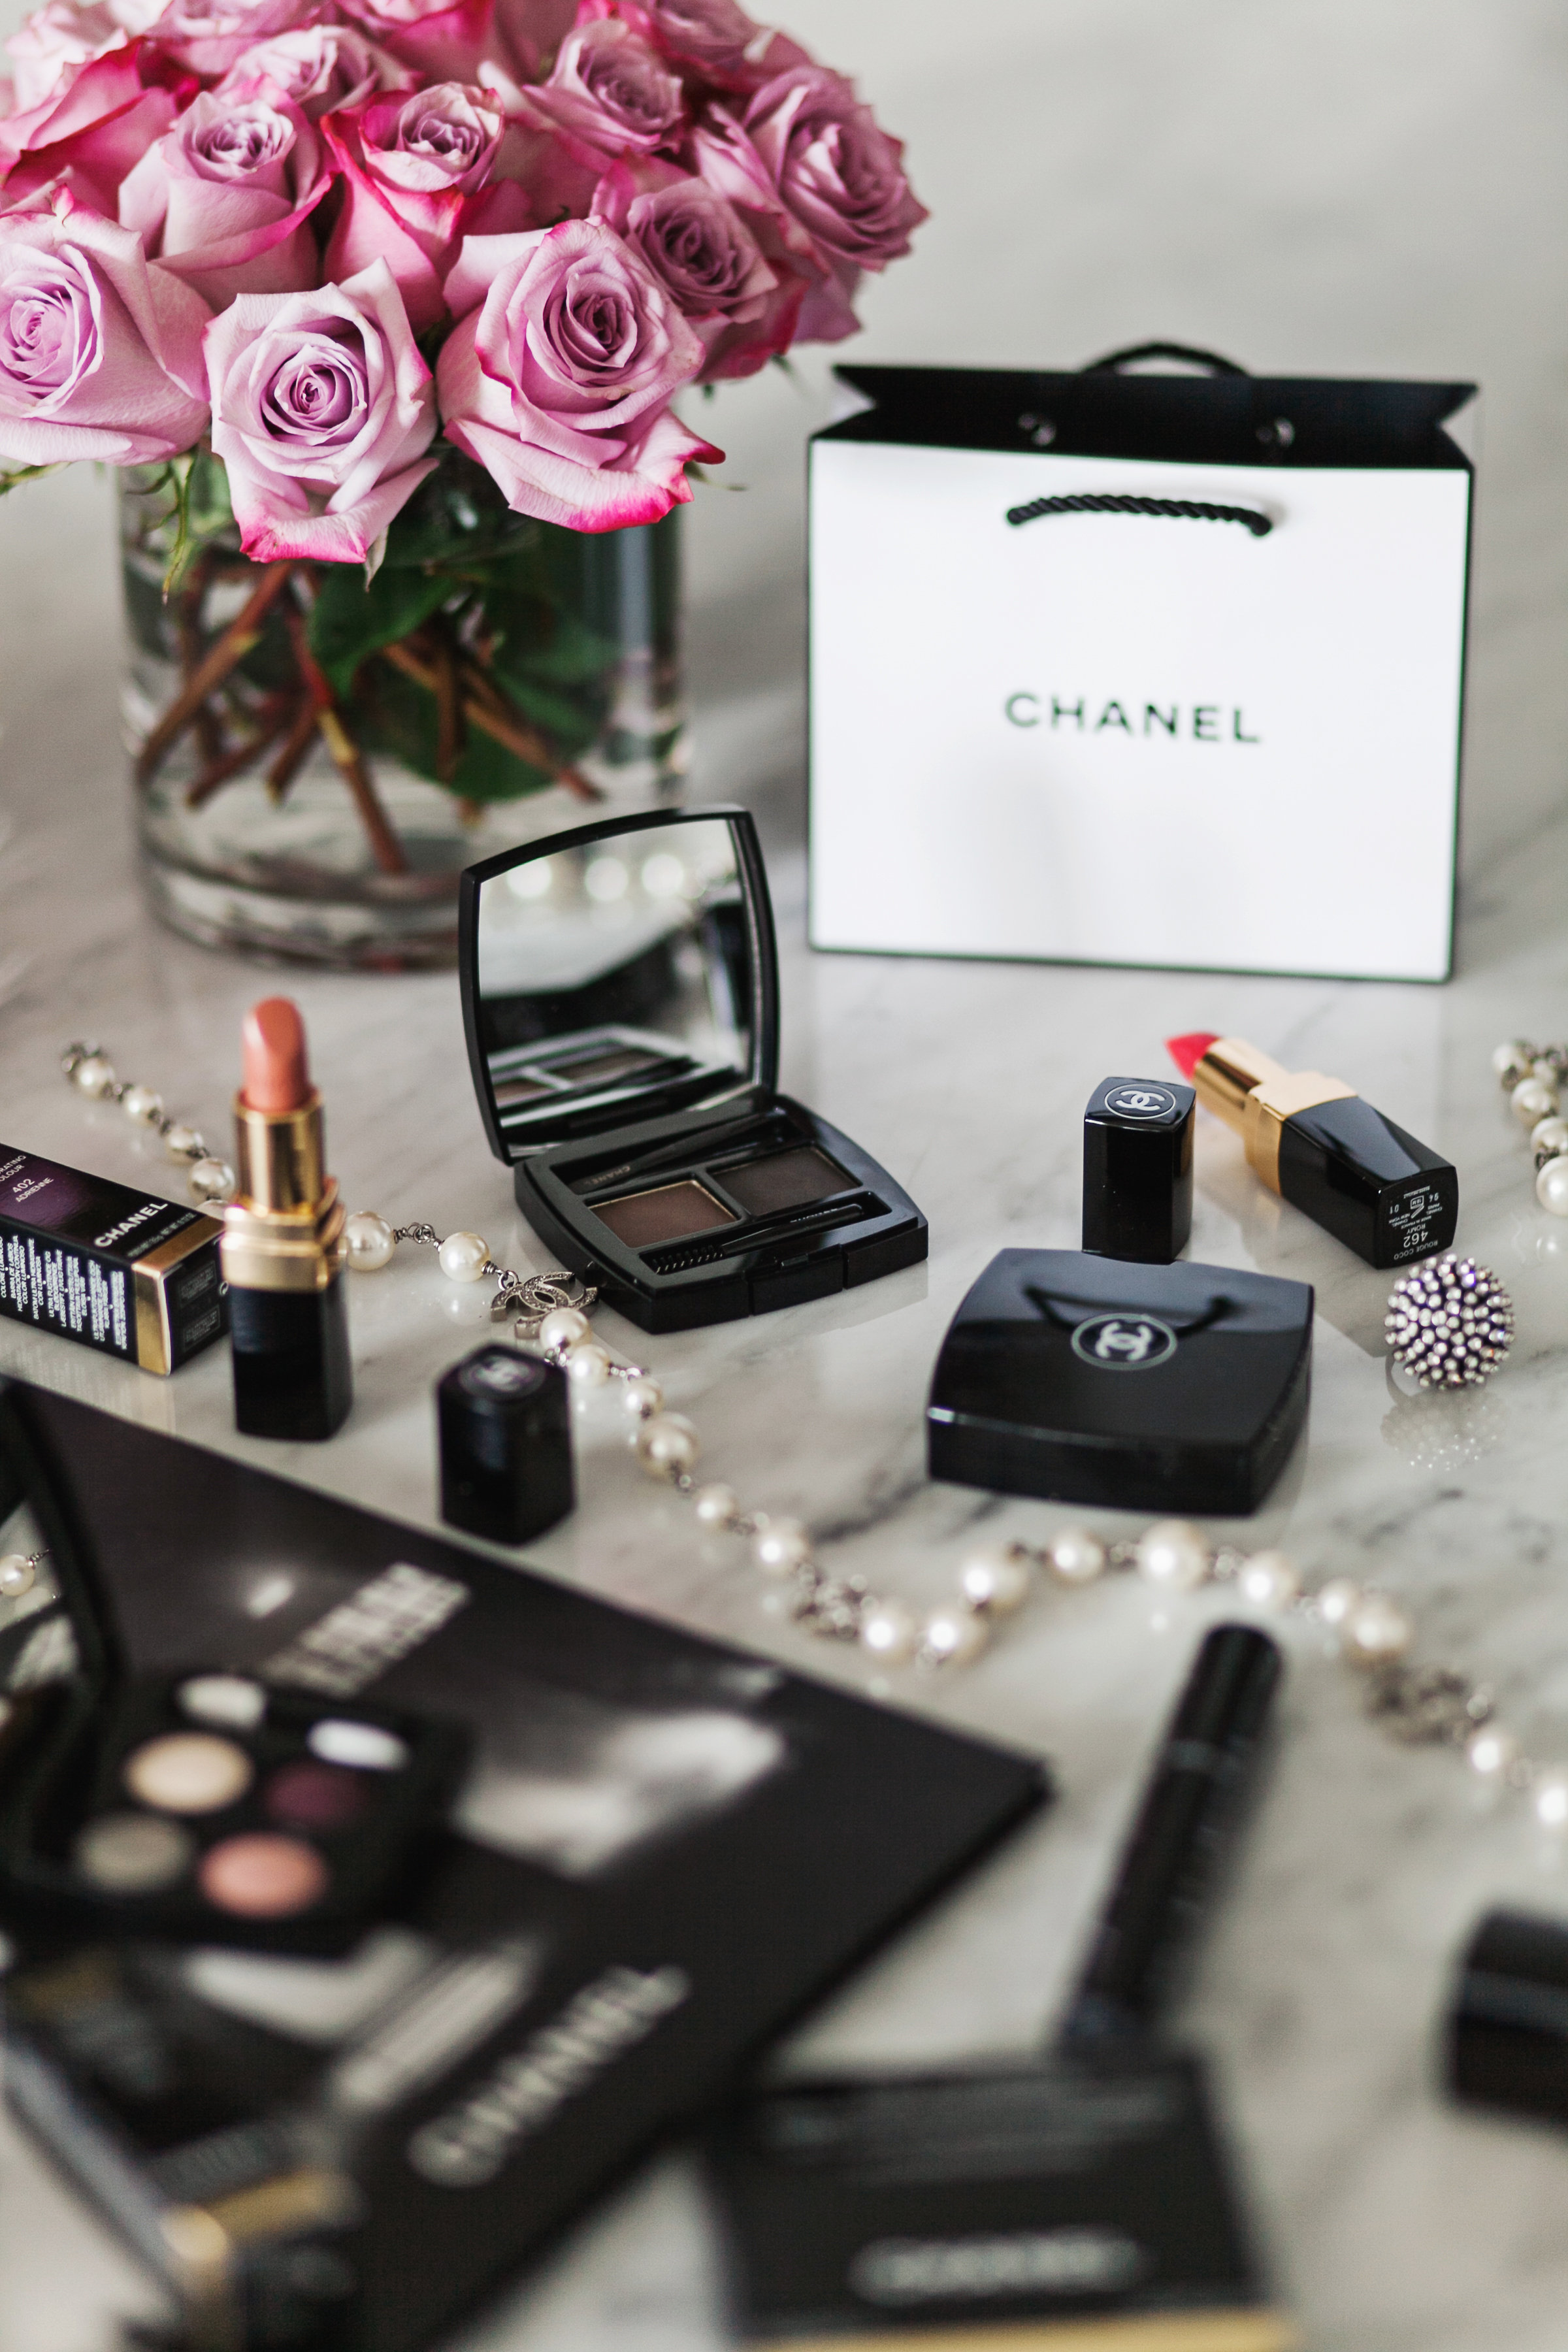 Chanel Beauty Essentials